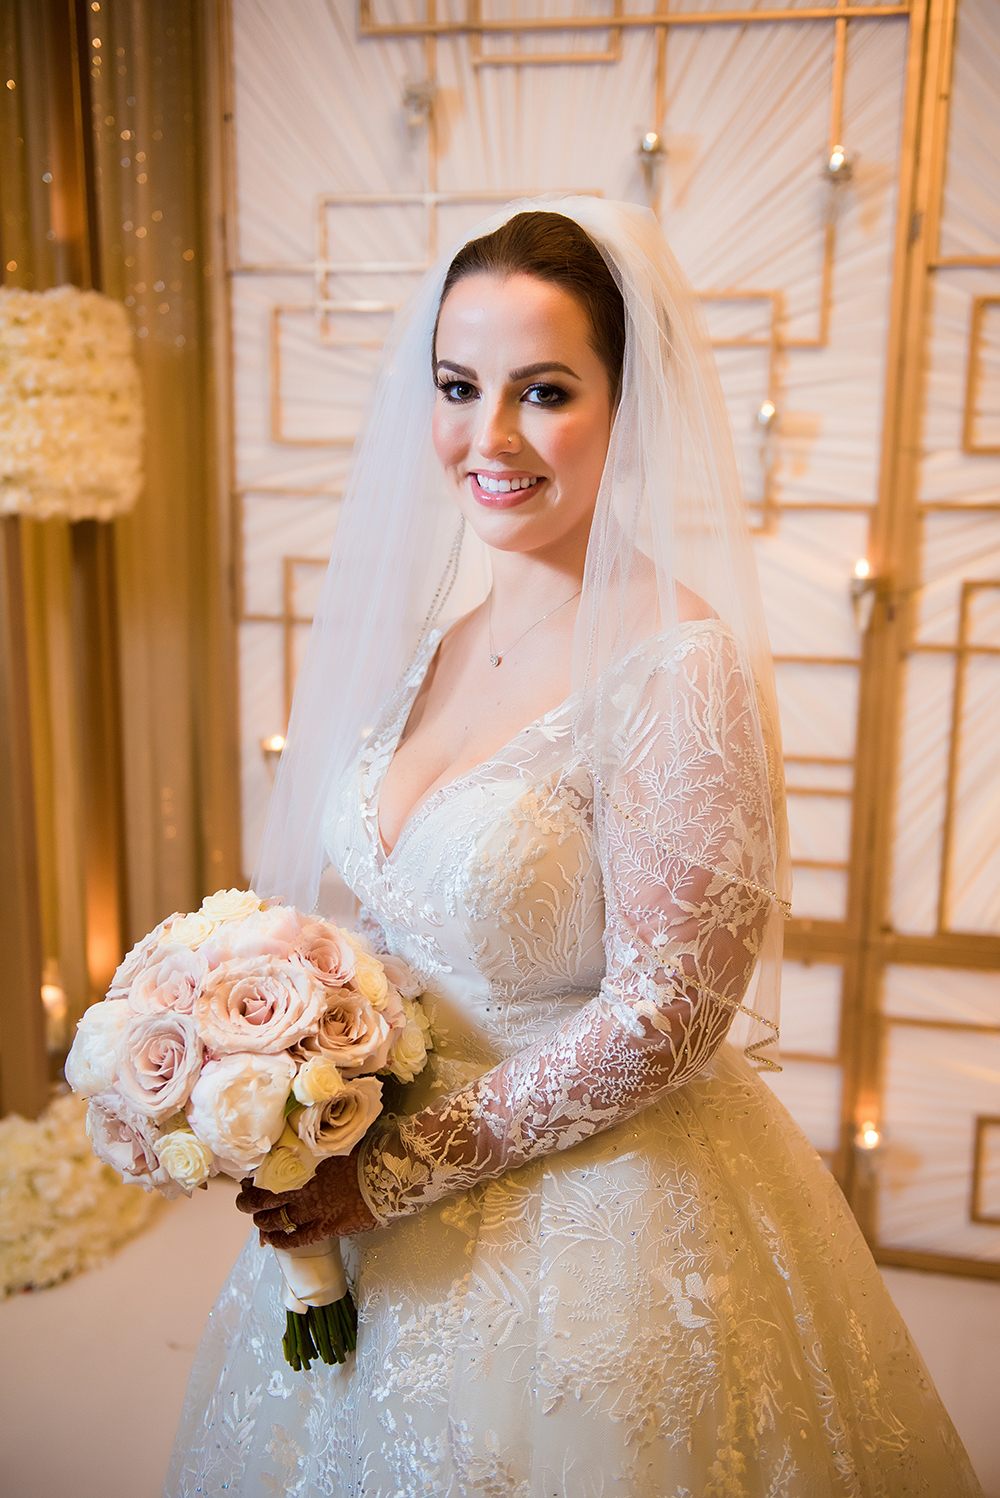 bridal portait photography, bouquet, hotel ceremony, fusion wedding